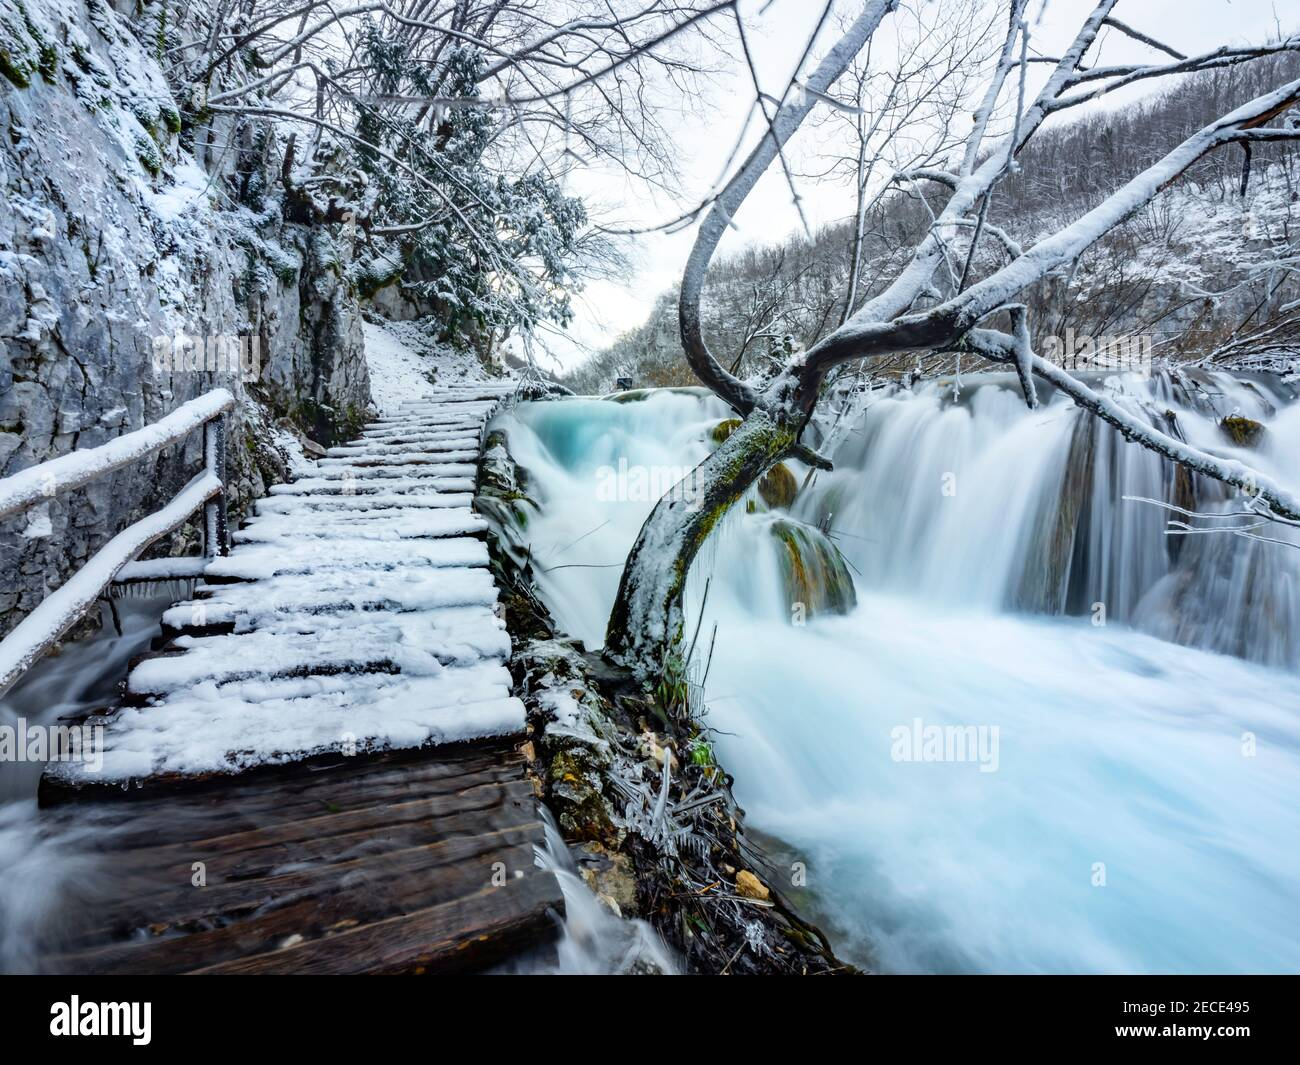 Frozen national park Plitvice lakes Croatia Europe Winter under covered cover snow ice waterflow flowing flow wooden walkway trail path trailparh Stock Photo